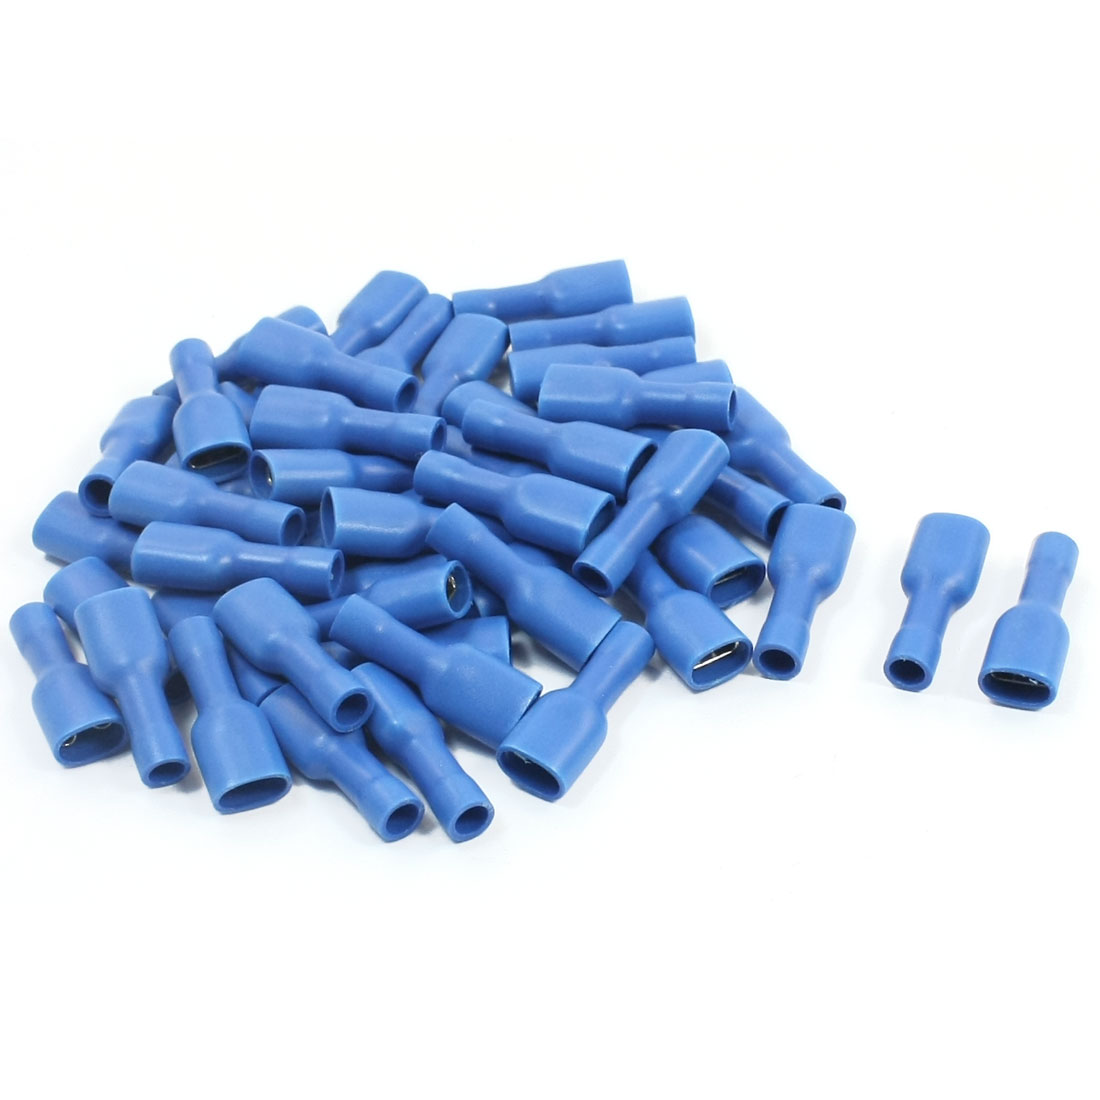 50Pcs FDFD2-250 Blue Plastic Coated Female Spade Connector Crimp Push-On Insulated Terminal 16-14AWG Wire